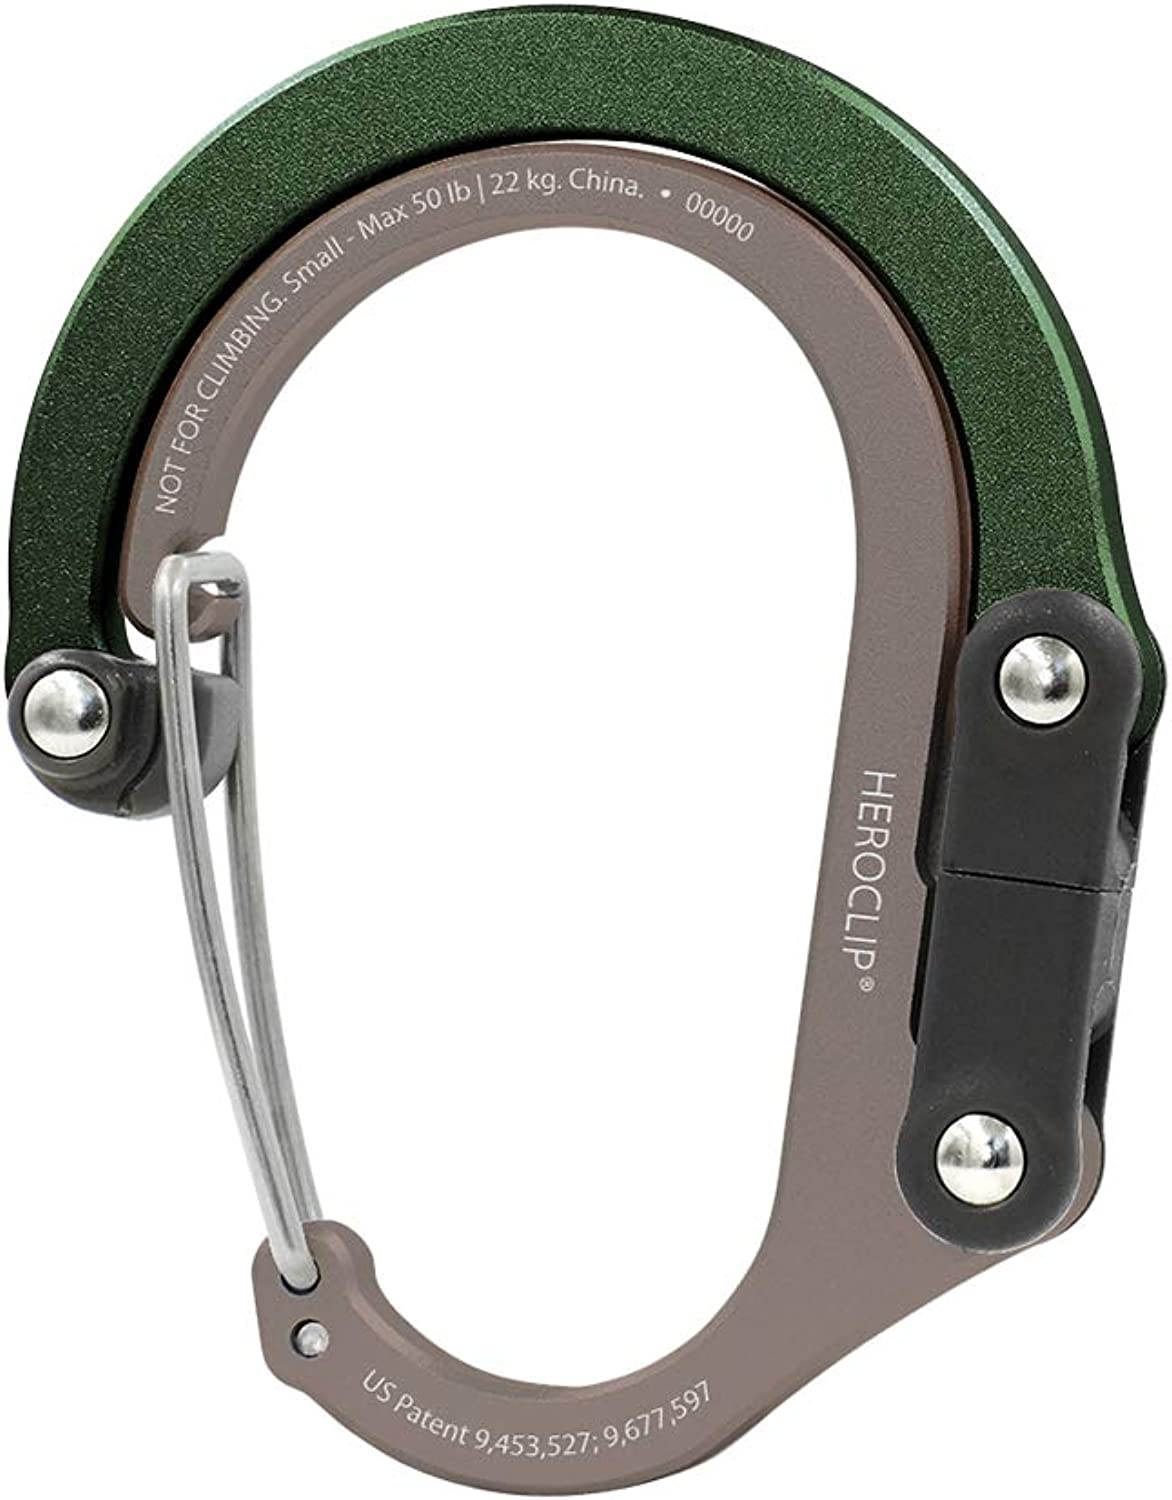 Small and Backpack Stroller HEROCLIP Carabiner Clip and Hook | for Purse